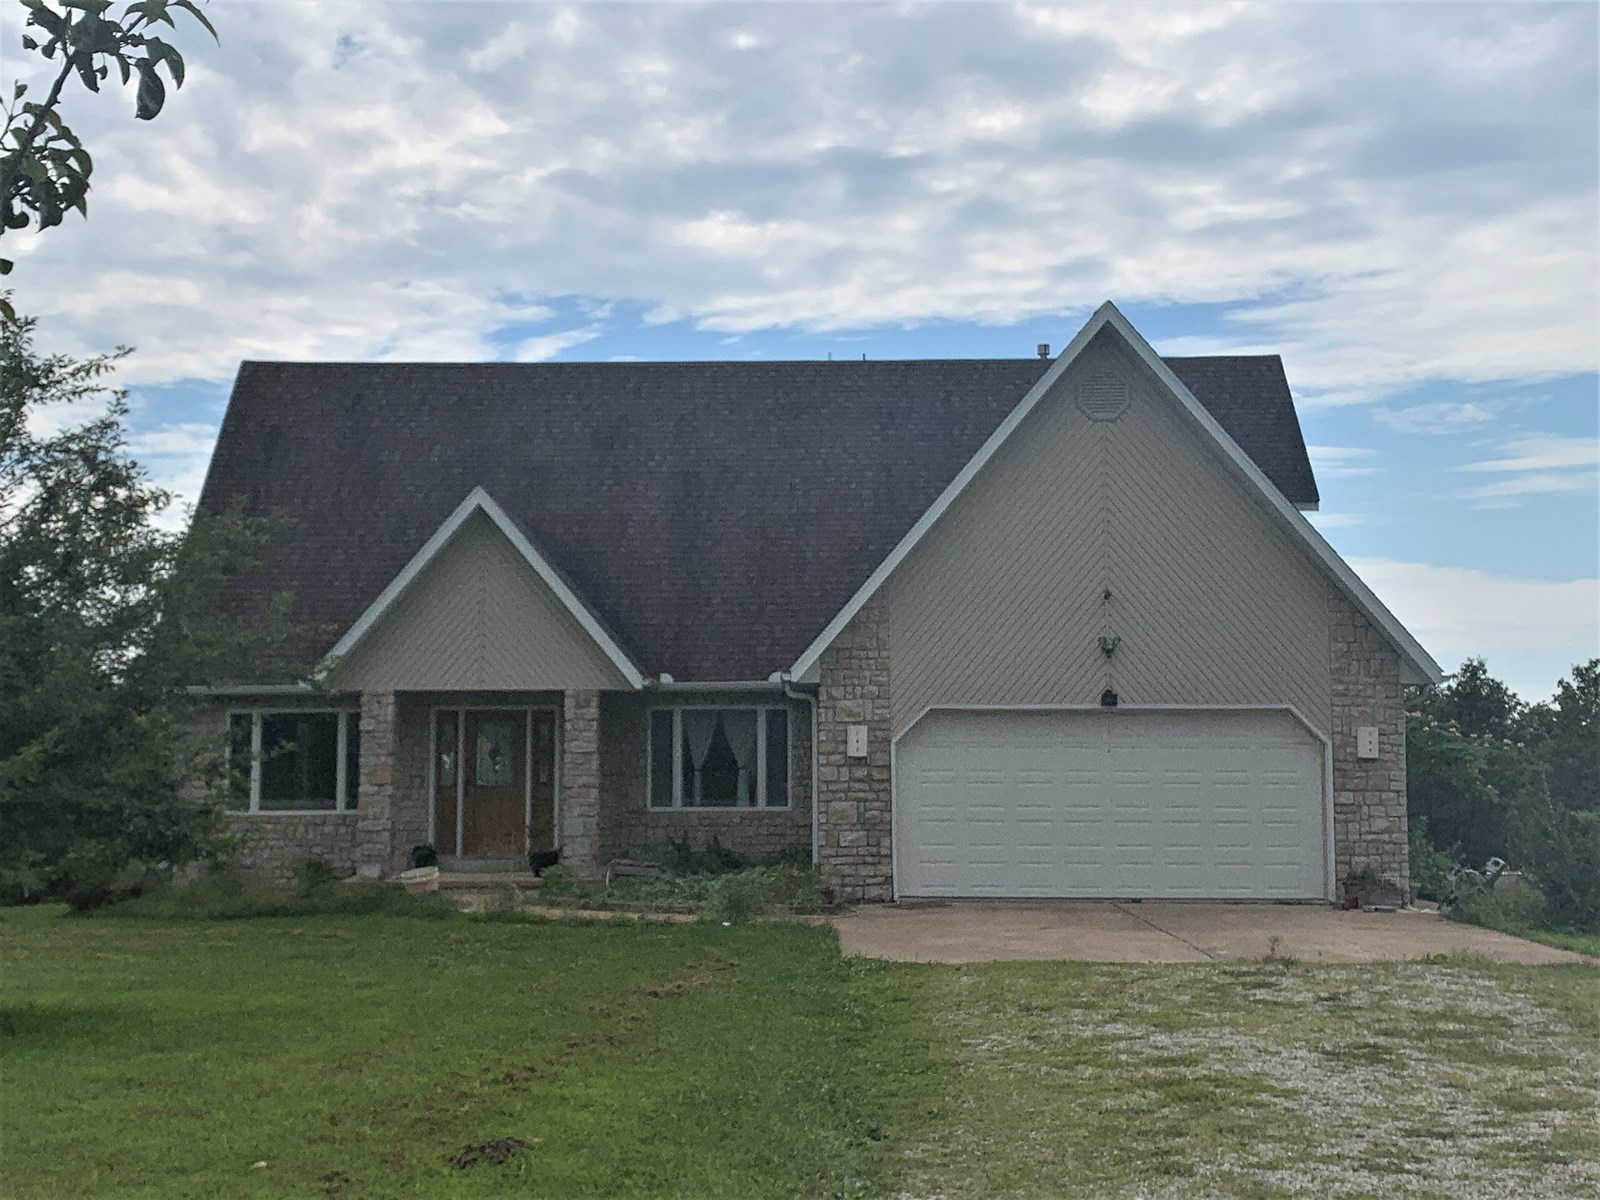 Home with Acres for Sale in Southern Missouri Ozarks